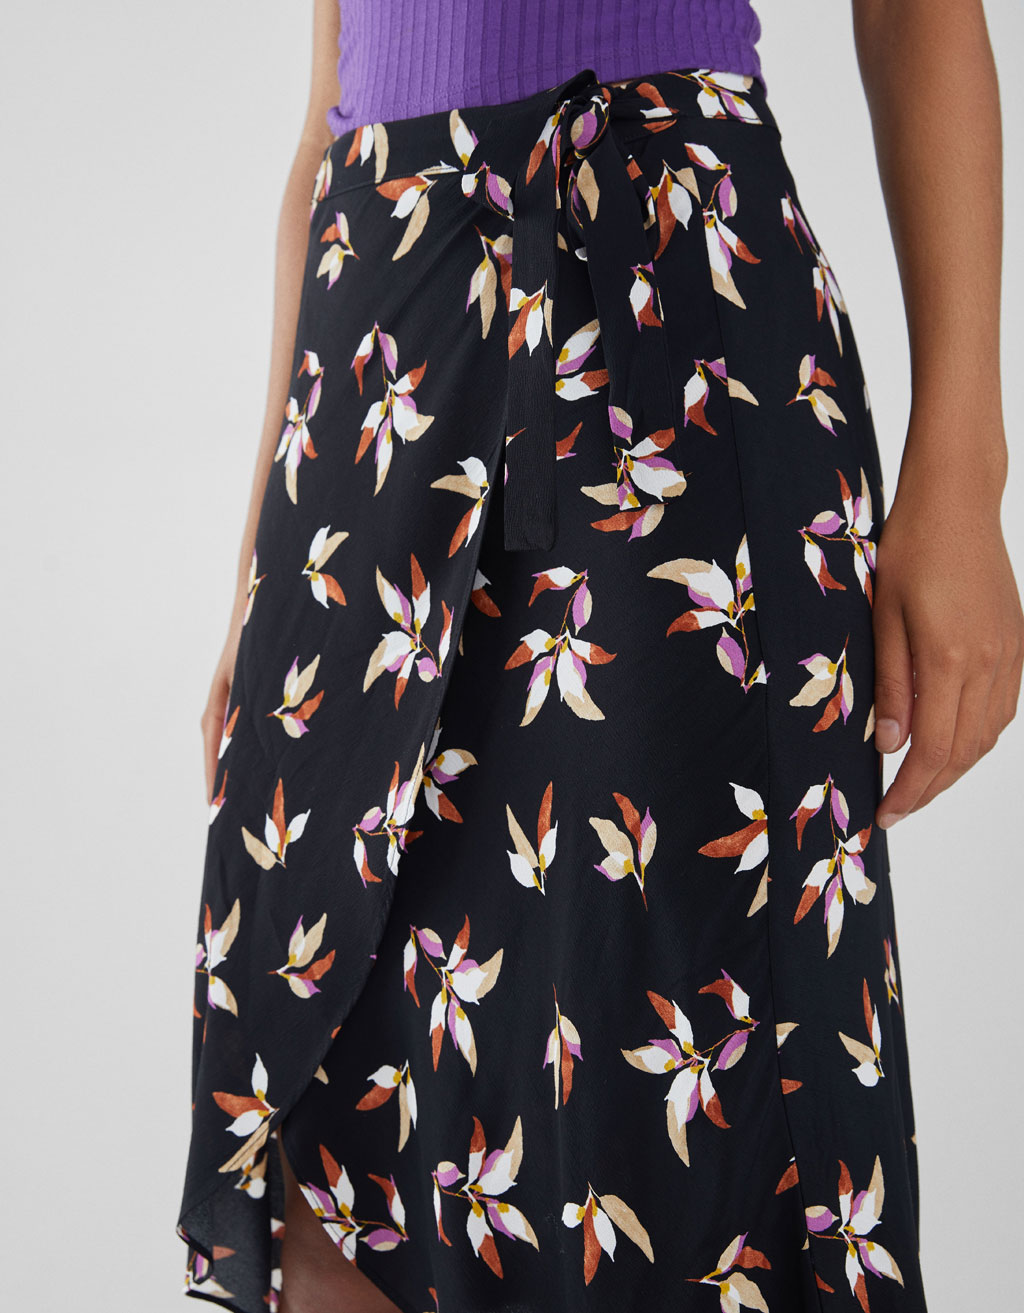 Midi skirt with tie